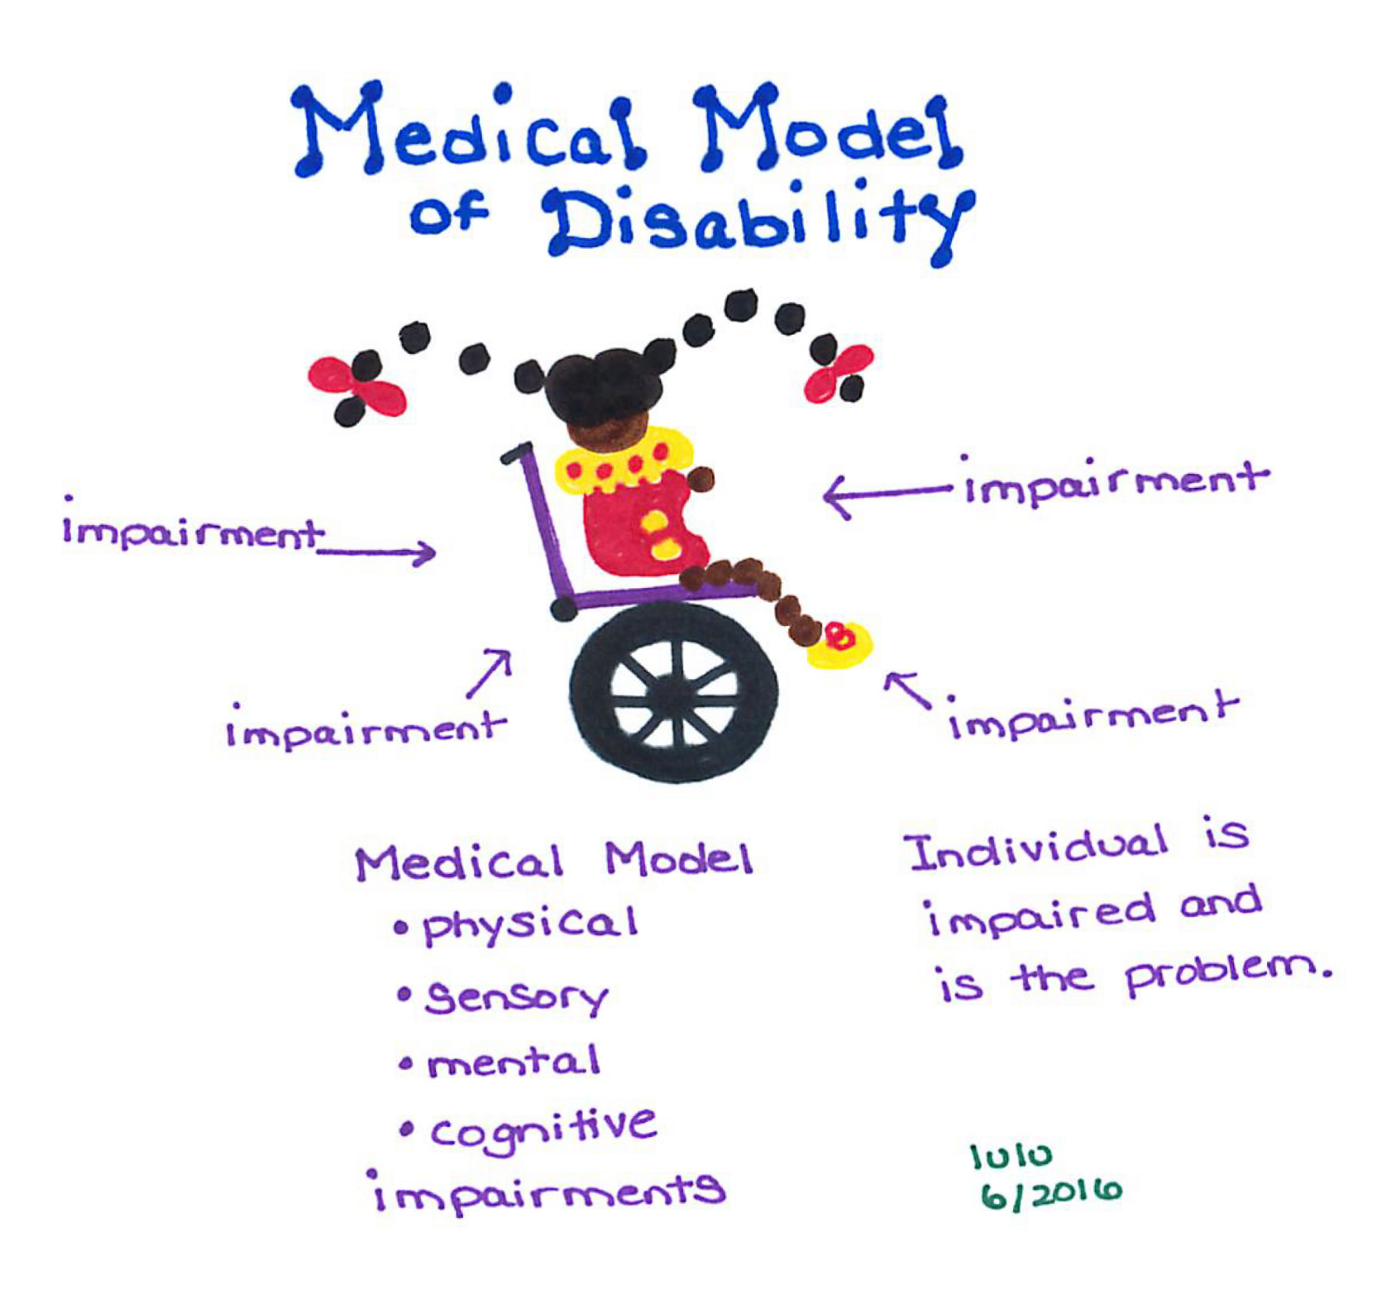 """An image with a disabled individual at the center using a wheelchair, with labels identifying various impairments. The medical model focuses on physical, sensory, mental, and cognitive disorders and disease processes. A quote in the image also reads, """"Individual is impaired and is the problem."""""""